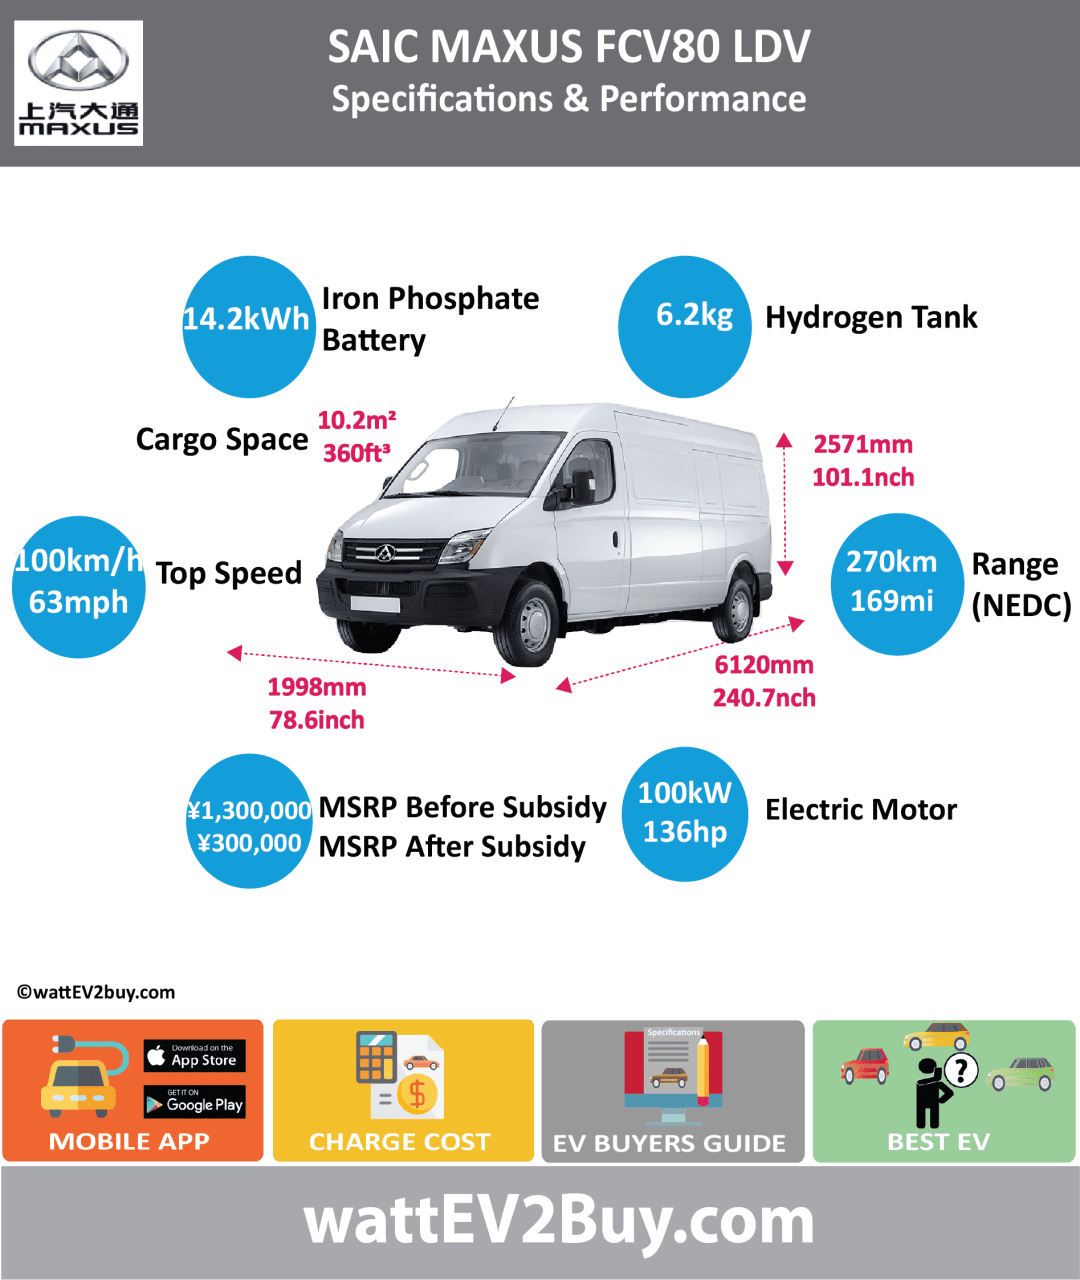 SAIC MAXUS FCV80 LDV SPECS wattev2Buy.com2017 Battery ChemistryLithium Iron Phosphate Battery Capacity kWh Battery Nominal rating kWh14.2 Voltage V Amps Ah Cells Modules Weight (kg) Cell Type SOC Cooling Cycles Battery Type Depth of Discharge (DOD) Energy Density Wh/kg Battery ManufacturerHefei Guoxuan Transtech Services Power Energy Co., Ltd. Battery Warranty - years5 Battery Warranty - km200000 Battery Warranty - miles Battery Electric Range - at constant 38mph Battery Electric Range - at constant 60km/h Battery Electric Range - NEDC Mi43.75 Battery Electric Range - NEDC km70 Battery Electric Range - CCM Mi Battery Electric Range - CCM km Battery Electric Range - EPA Mi Battery Electric Range - EPA km Electric Top Speed - mph62.5 Electric Top Speed - km/h100 Acceleration 0 - 100km/h sec Acceleration 0 - 50km/h sec Acceleration 0 - 62mph sec Acceleration 0 - 60mph sec Acceleration 0 - 37.2mph sec Wireless Charging Direct Current Fast Charge kW Onboard Charger kW Charger Efficiency Charging Cord - amps Charging Cord - volts LV 1 Charge kW LV 1 Charge Time (Hours) LV 2 Charge kW LV 2 Charge Time (Hours) LV 3 CCS/Combo kW30 LV 3 Charge Time (min to 70%) LV 3 Charge Time (min to 80%)30 LV 3 Charge Time (mi) LV 3 Charge Time (km) Charging System kW Charger Output Charge Connector Power Outlet kW Power Outlet Amps MPGe Combined - miles MPGe Combined - km MPGe City - miles MPGe City - km MPGe Highway - miles MPGe Highway - km Max Power - hp (Electric Max)136 Max Power - kW  (Electric Max)101.4153406 Max Torque - lb.ft  (Electric Max)258.1501696 Max Torque - N.m  (Electric Max)350 Drivetrain Electric Motor ManufacturerShanghai Automotive Electric Drive Co., Ltd Generator Electric Motor - Front Max Power - hp (Front) Max Power - kW (Front) Max Torque - lb.ft (Front) Max Torque - N.m (Front) Electric Motor - Rear Max Power - hp (Rear) Max Power - kW (Rear) Max Torque - lb.ft (Rear) Max Torque - N.m (Rear) Motor Type Electric Motor Output kW55 Electric Motor Output hp73.7561 